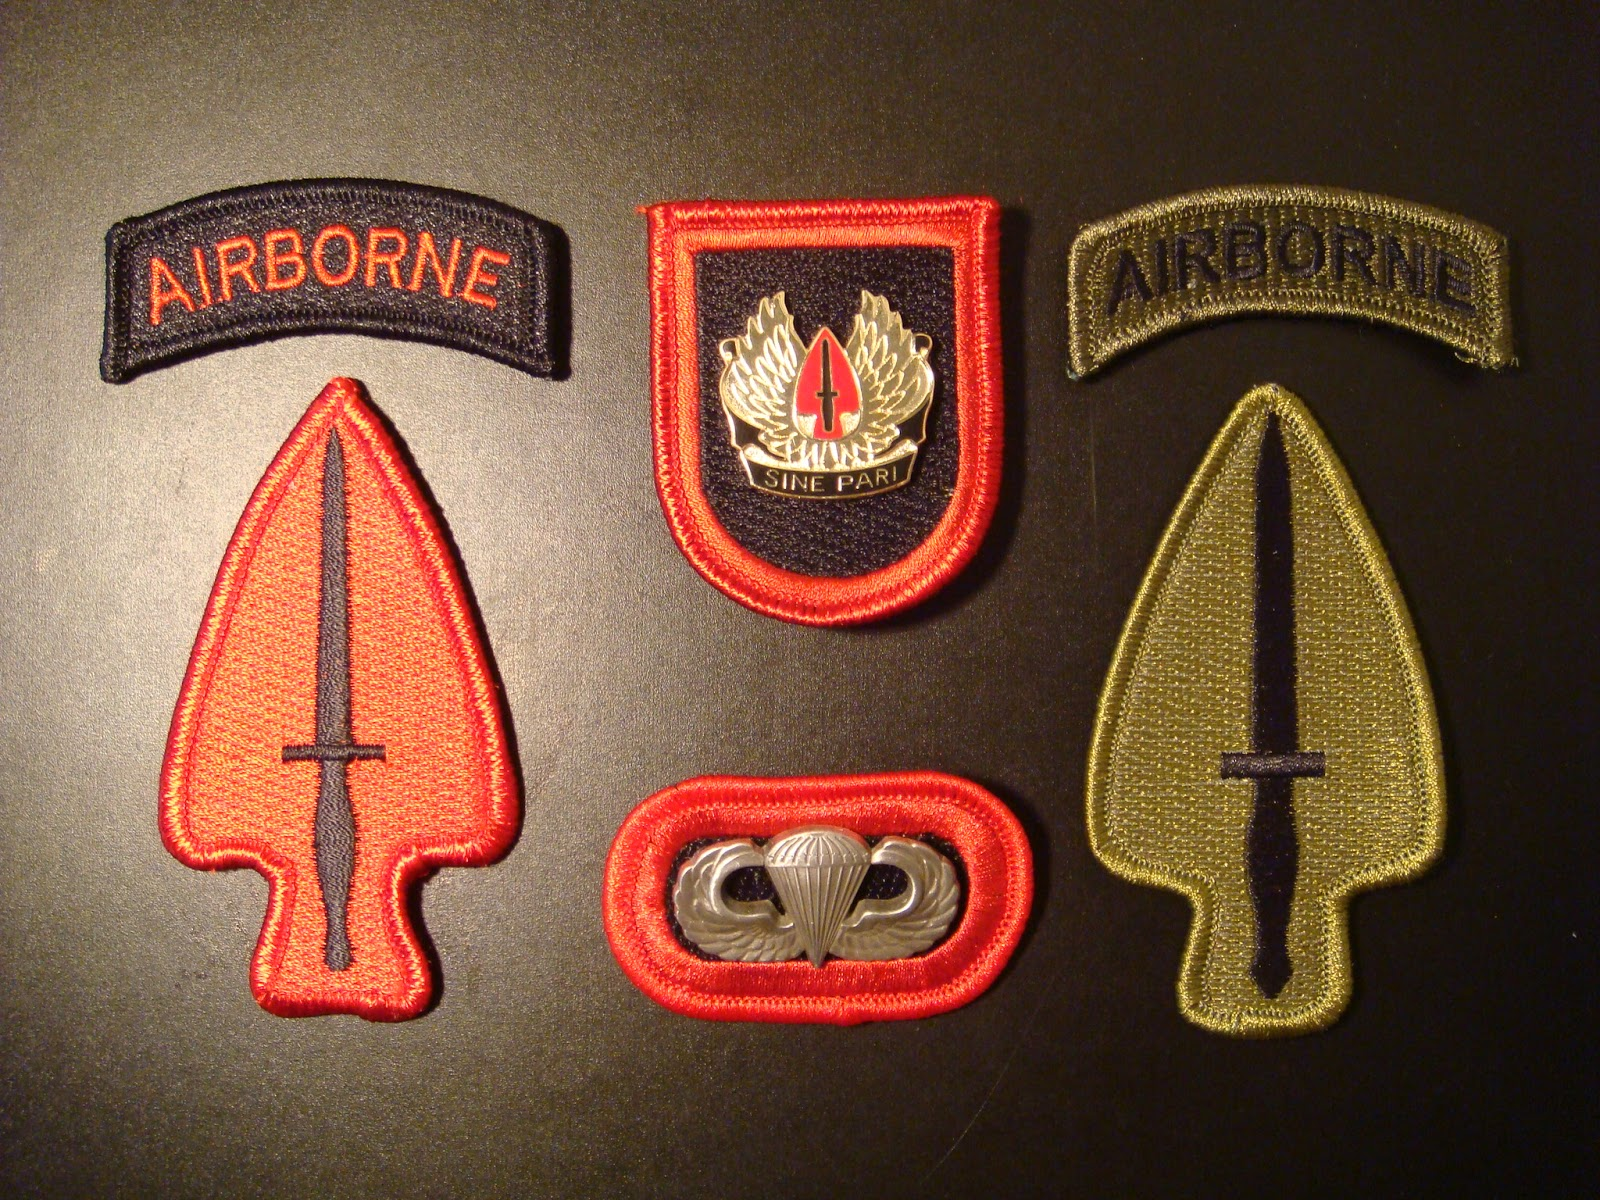 Airsoft US Army 5th Special Forces Task Force 1 CCN COMMO TF1A Uniform patch Aufnäher Bekleidung & Schutzausrüstung